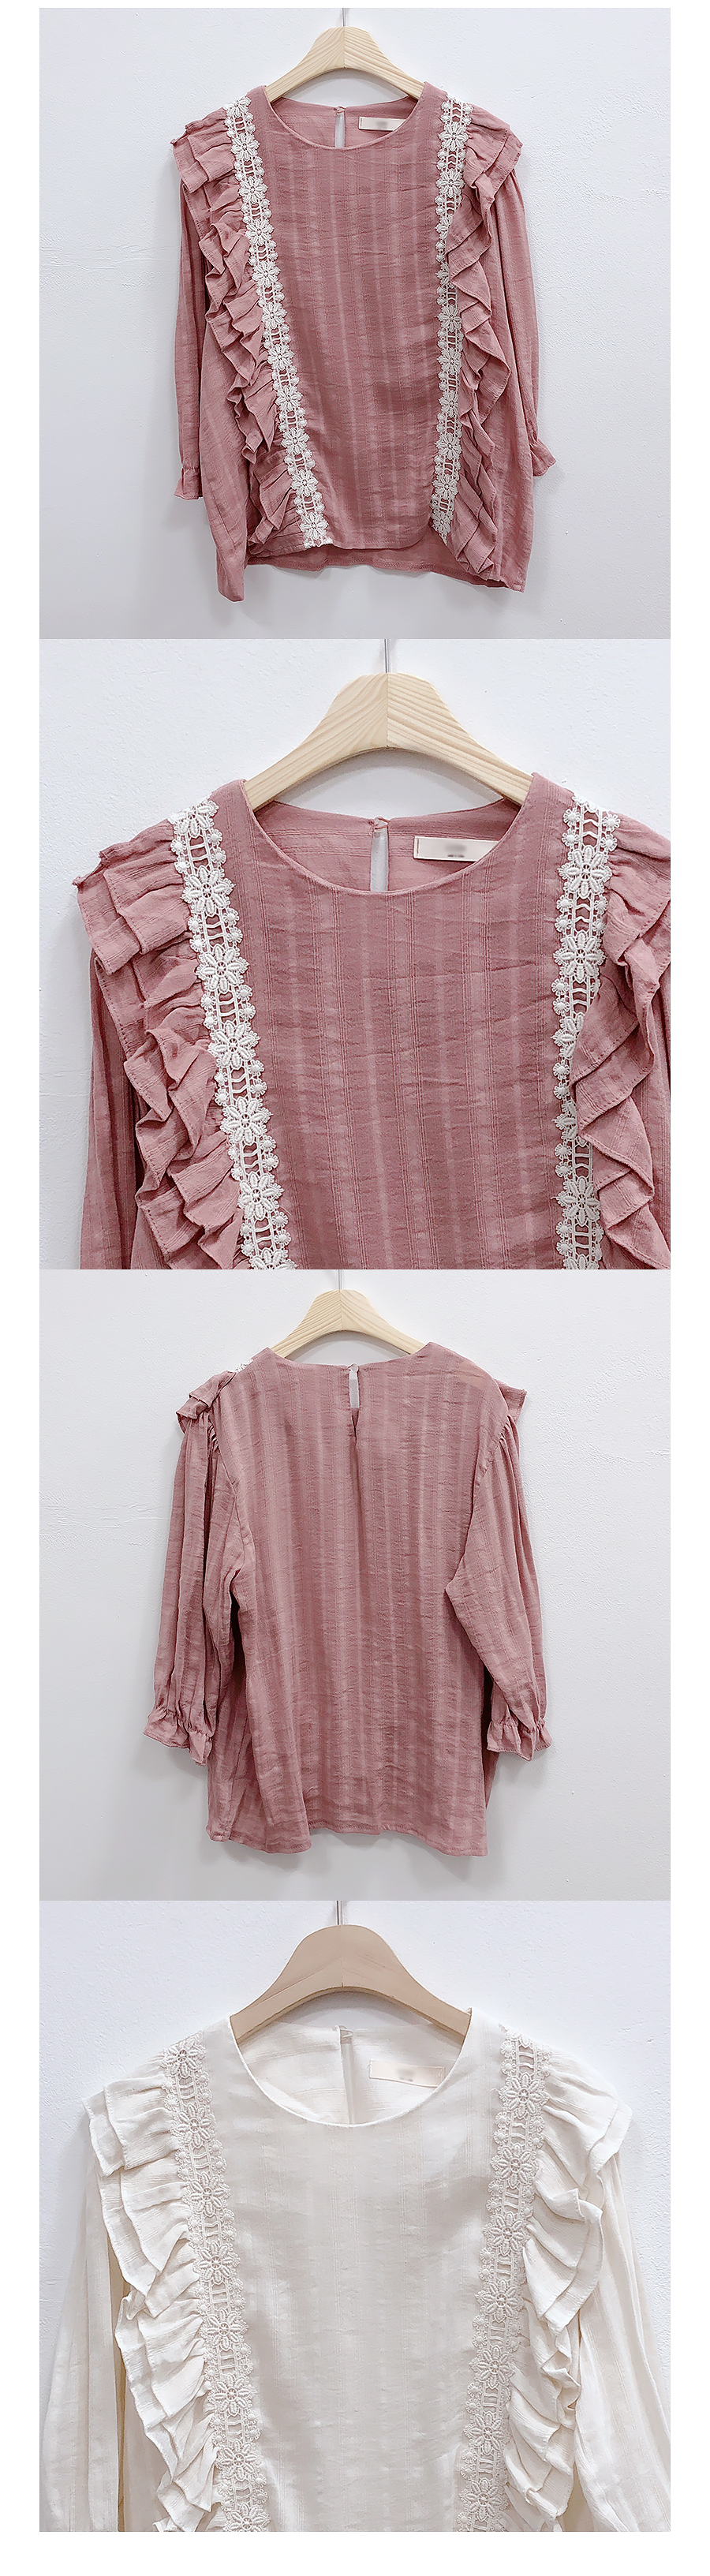 France frilly blouse